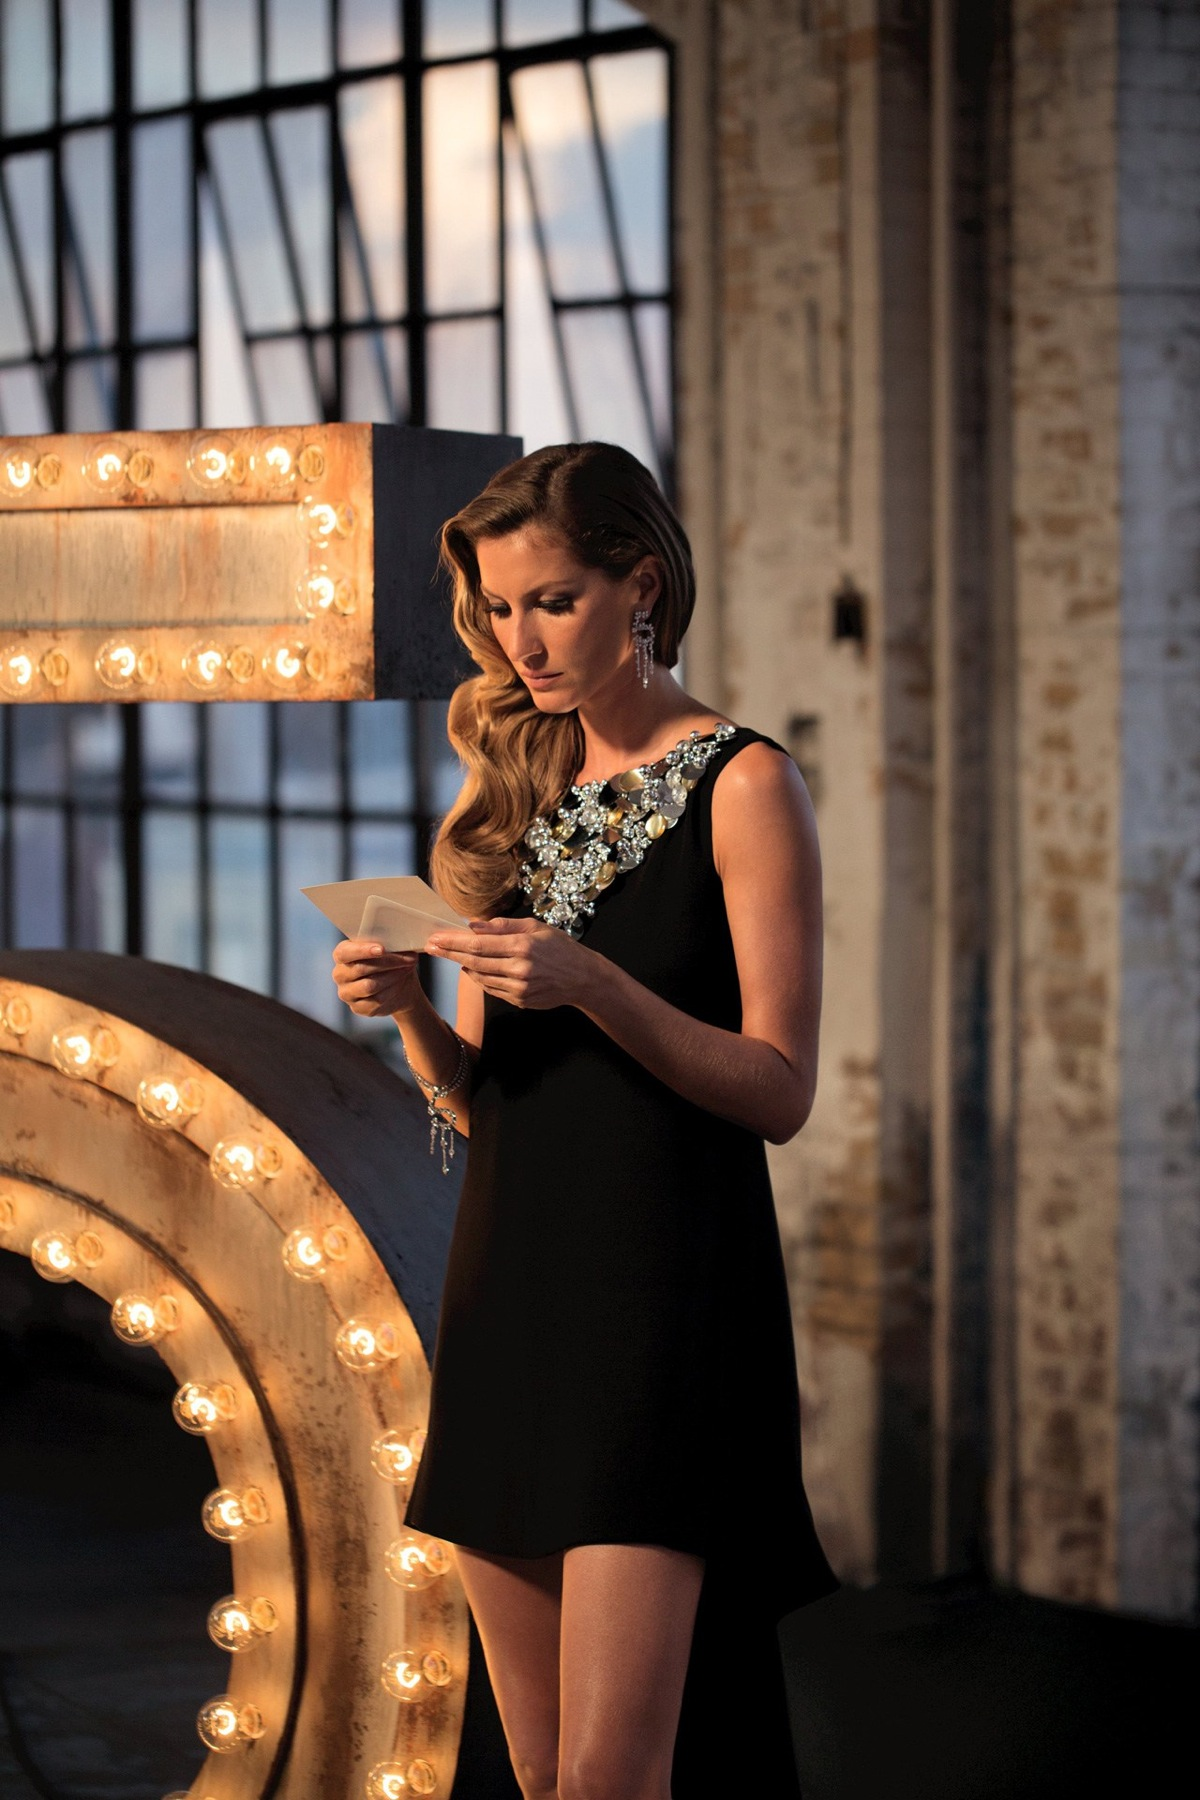 Chanel N 5 Film Featuring Gisele Bundchen 2